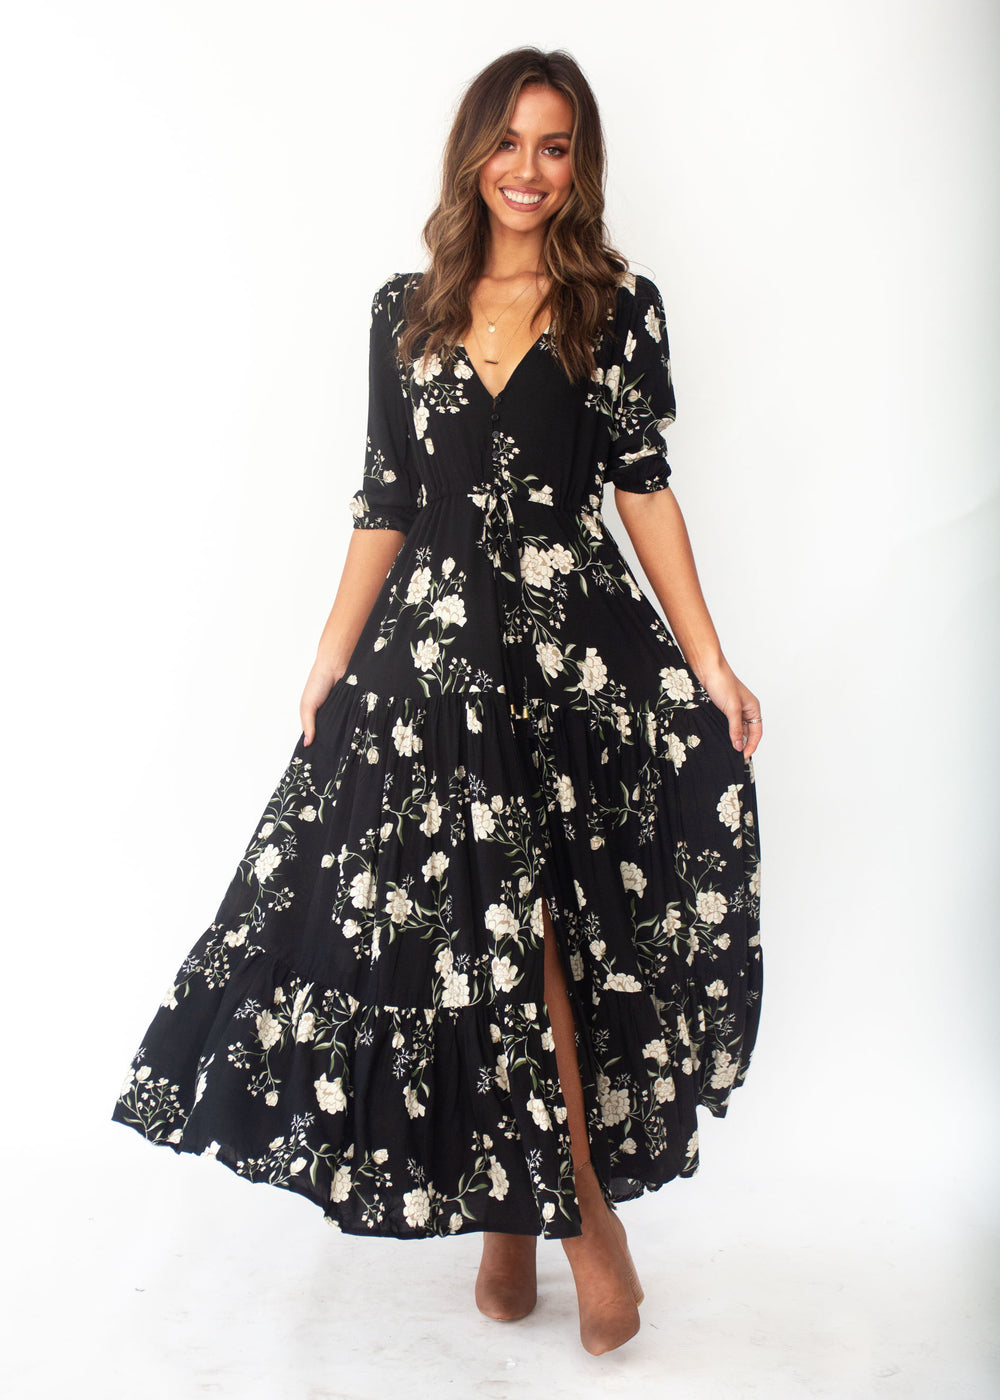 Women s Tessa Maxi Dress - Alliah - Jaase - Black Floral Print ... fbd3cabf8